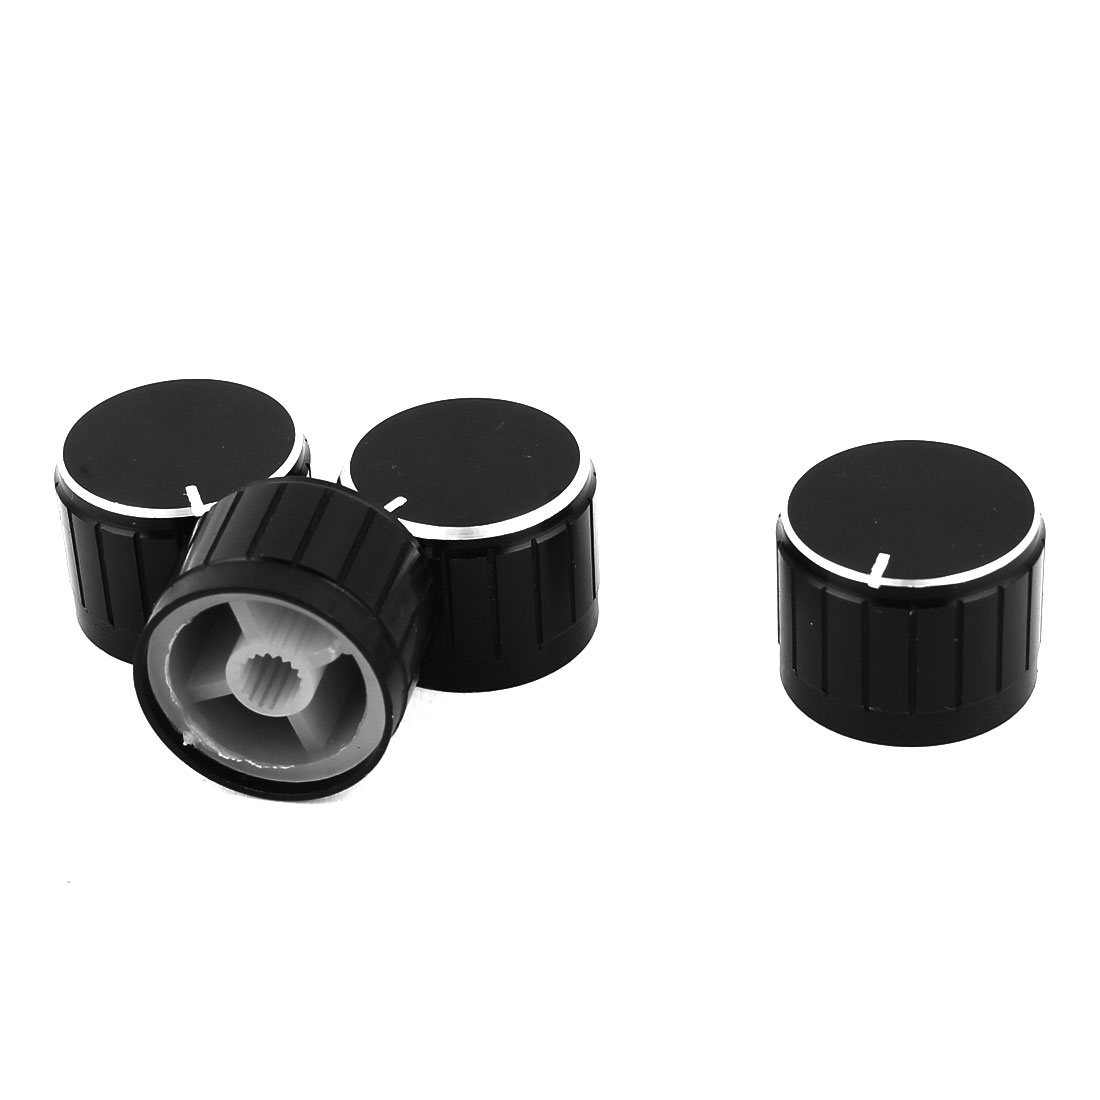 4 Pcs Black Silver Tone Plastic Potentiometer Rotary Control Knobs Caps 17x11mm